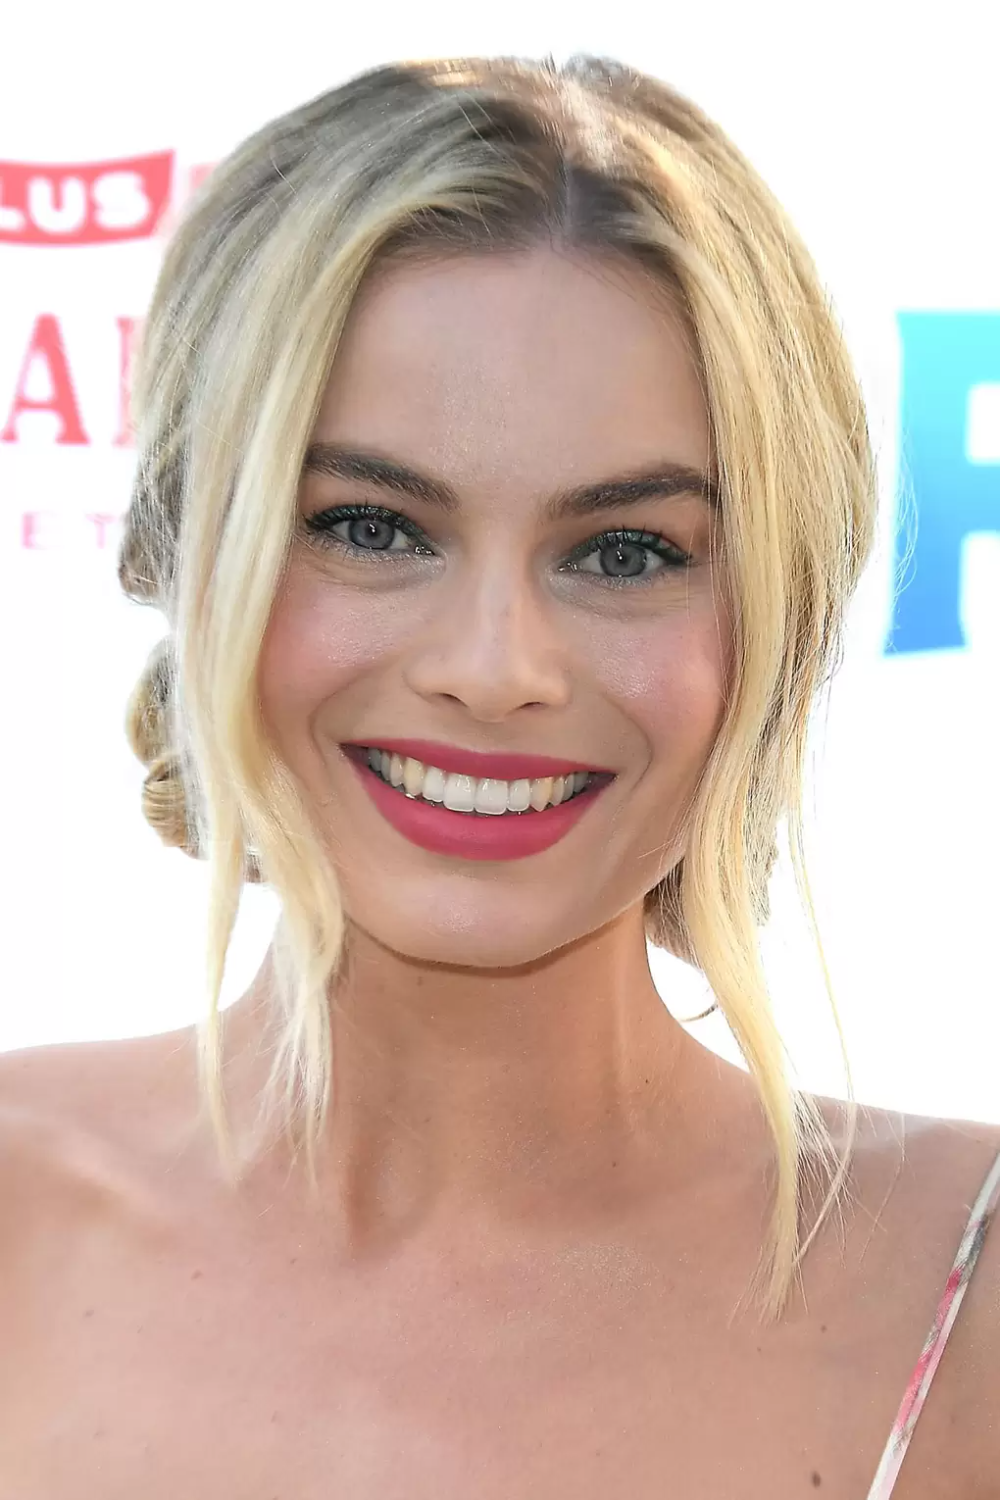 Proof that Margot Robbie has the best beauty game in Hollywood